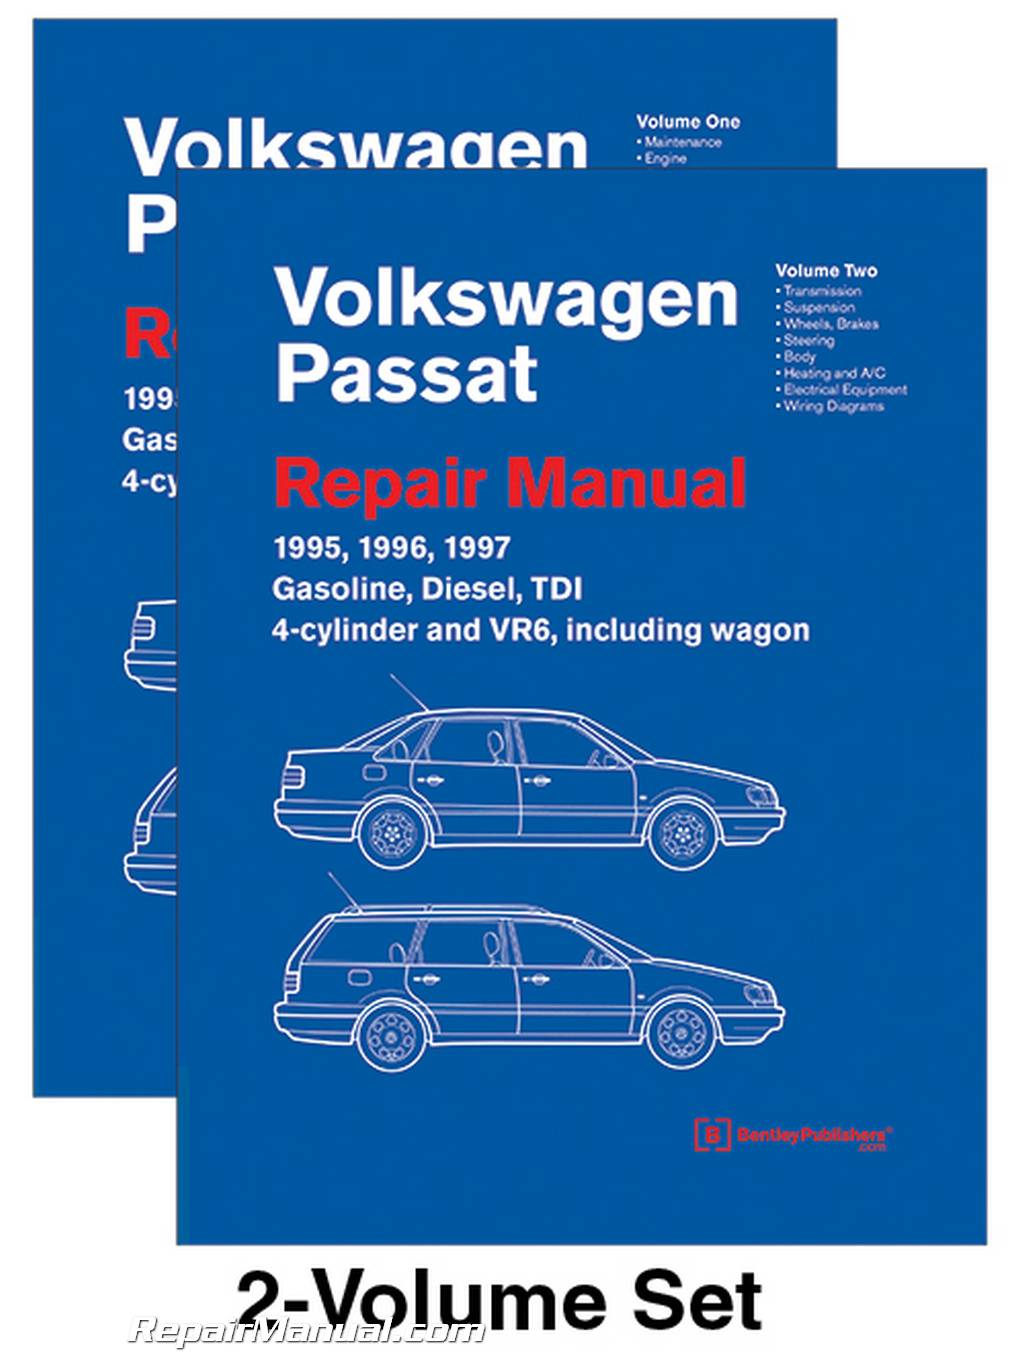 volkswagen passat b4 repair manual 1995 1996 1997 gasoline turbo rh repairmanual com VW Passat B5 vw passat b4 service manual